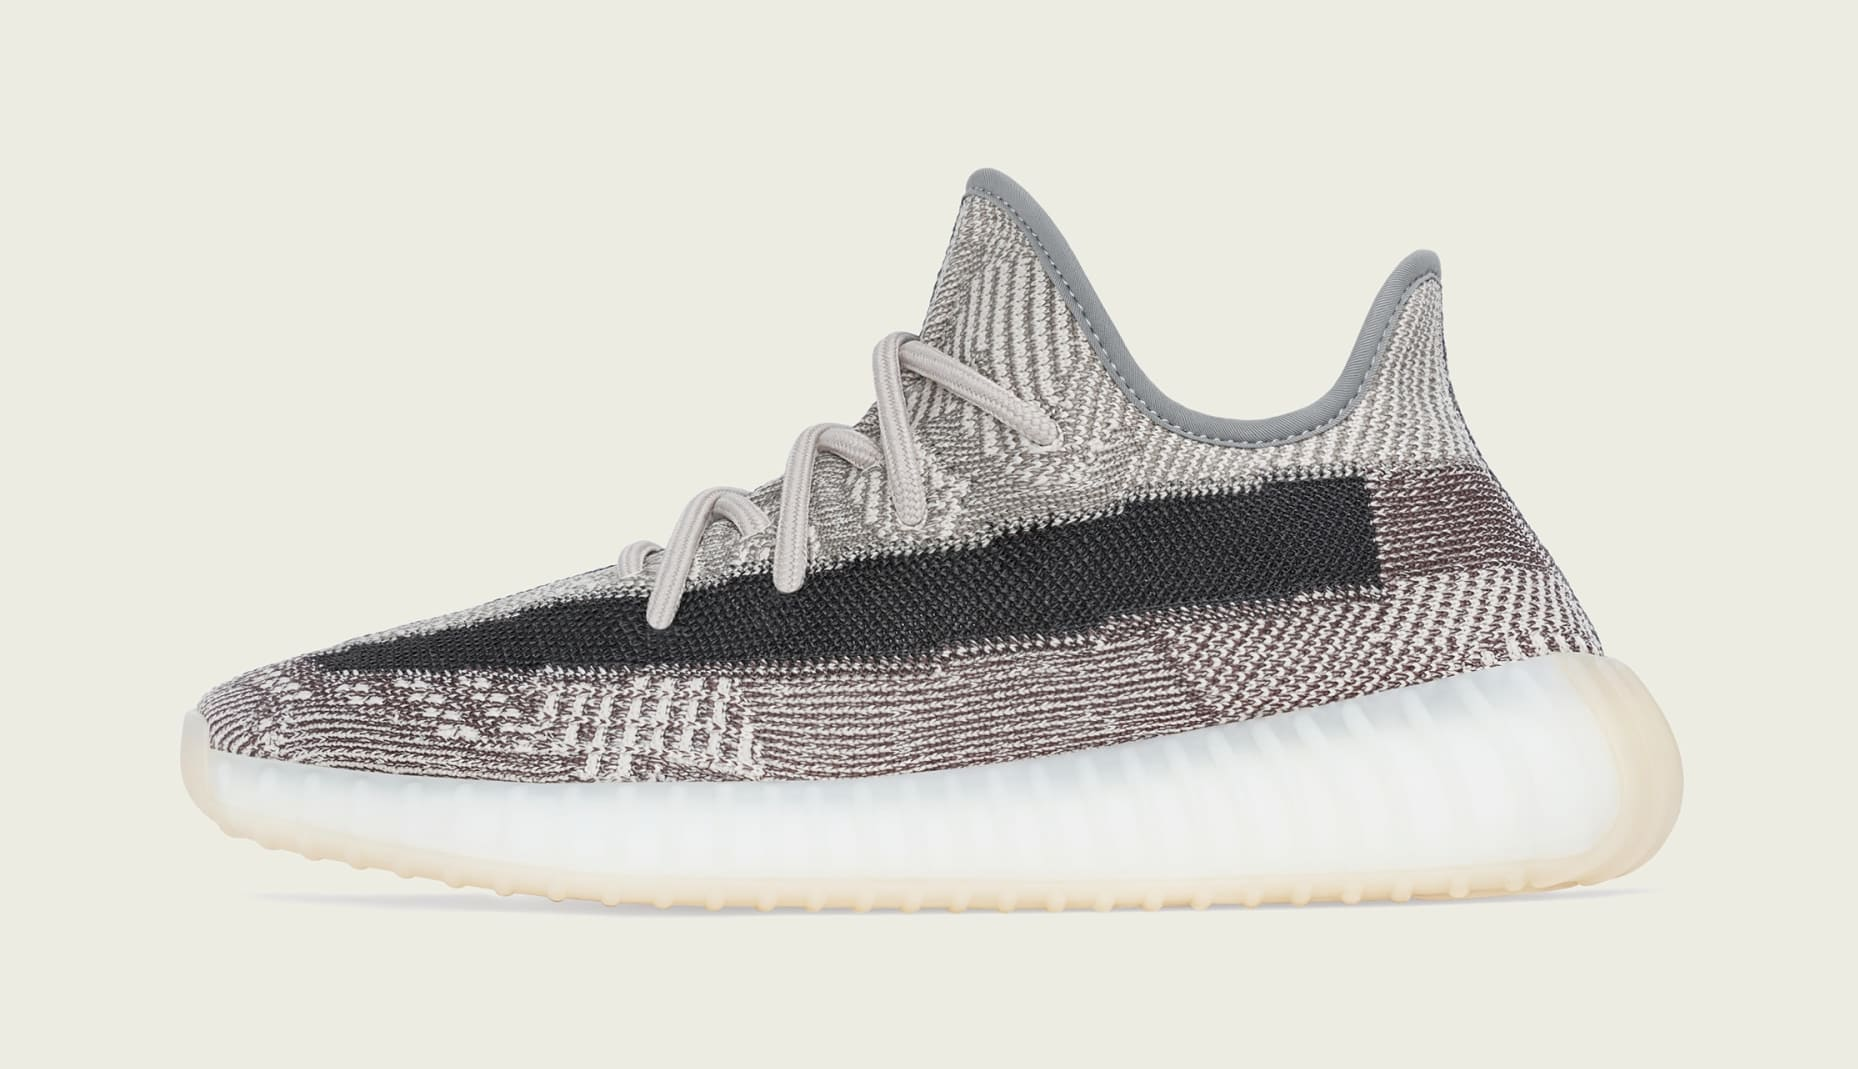 Adidas Yeezy Boost 350 V2 'Zyon' FZ1267 Lateral